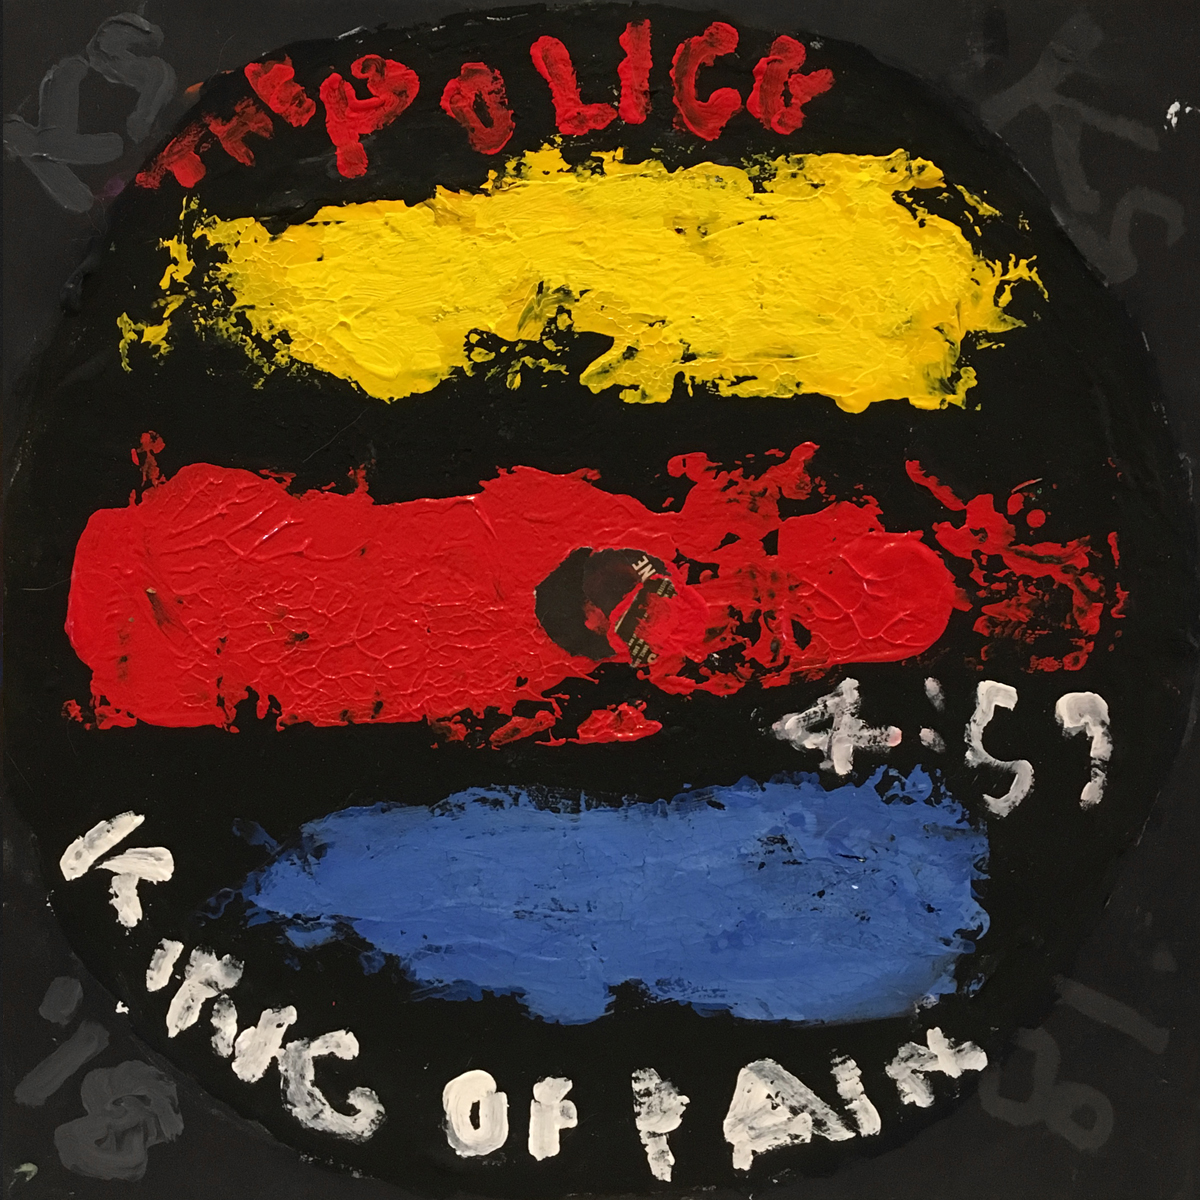 The Police / King of pain